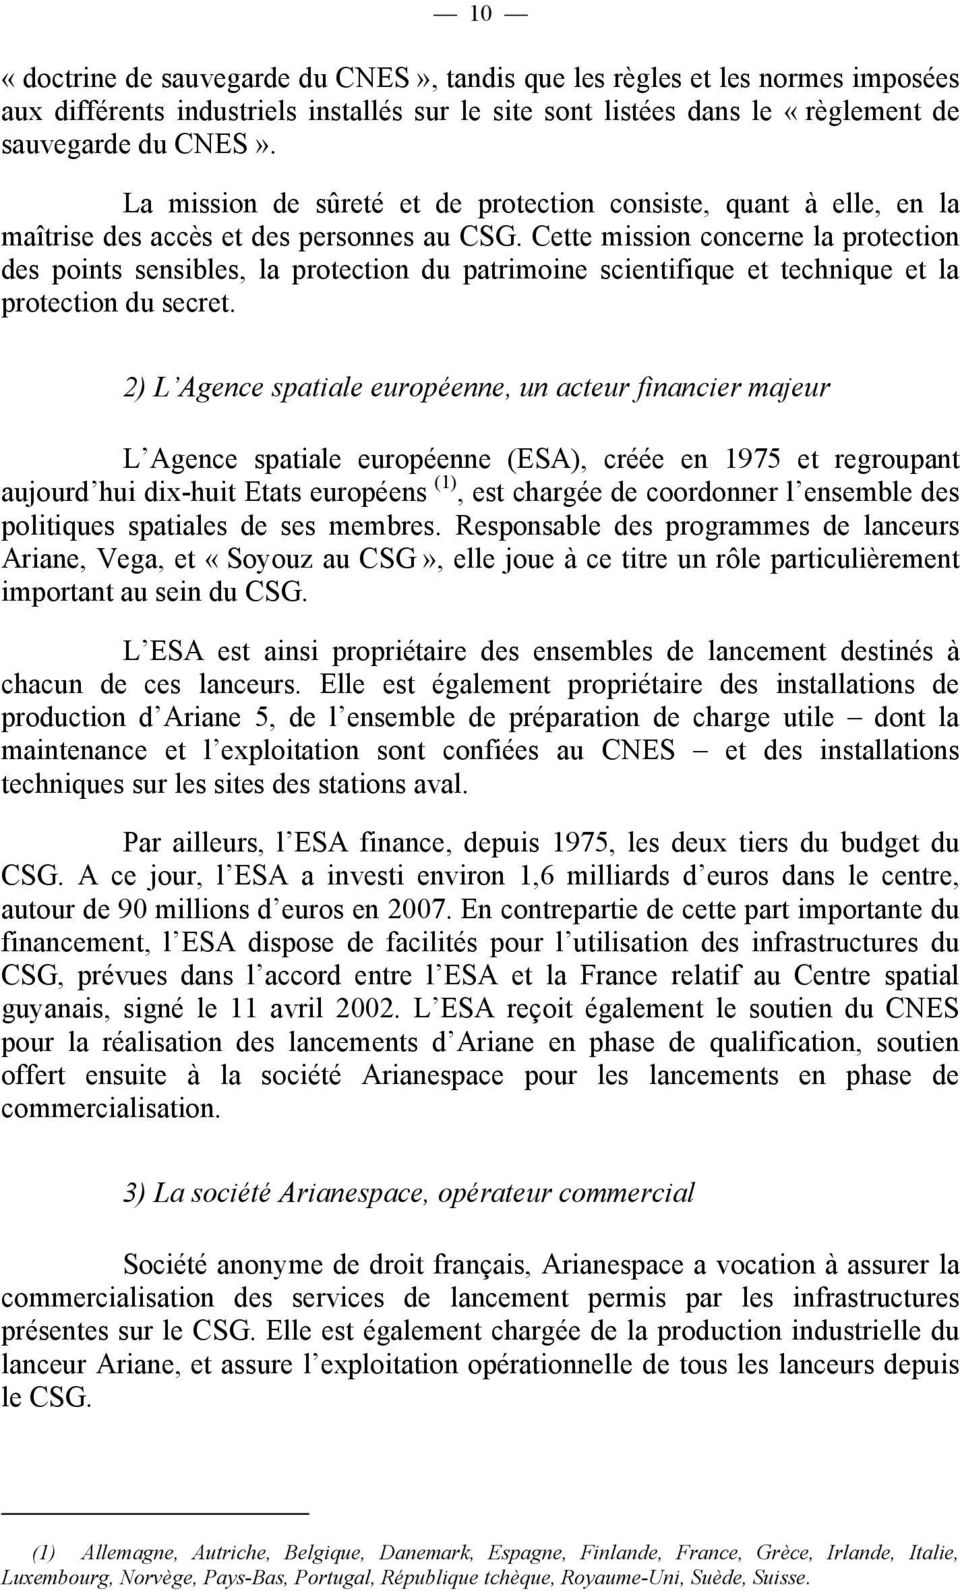 Cette mission concerne la protection des points sensibles, la protection du patrimoine scientifique et technique et la protection du secret.